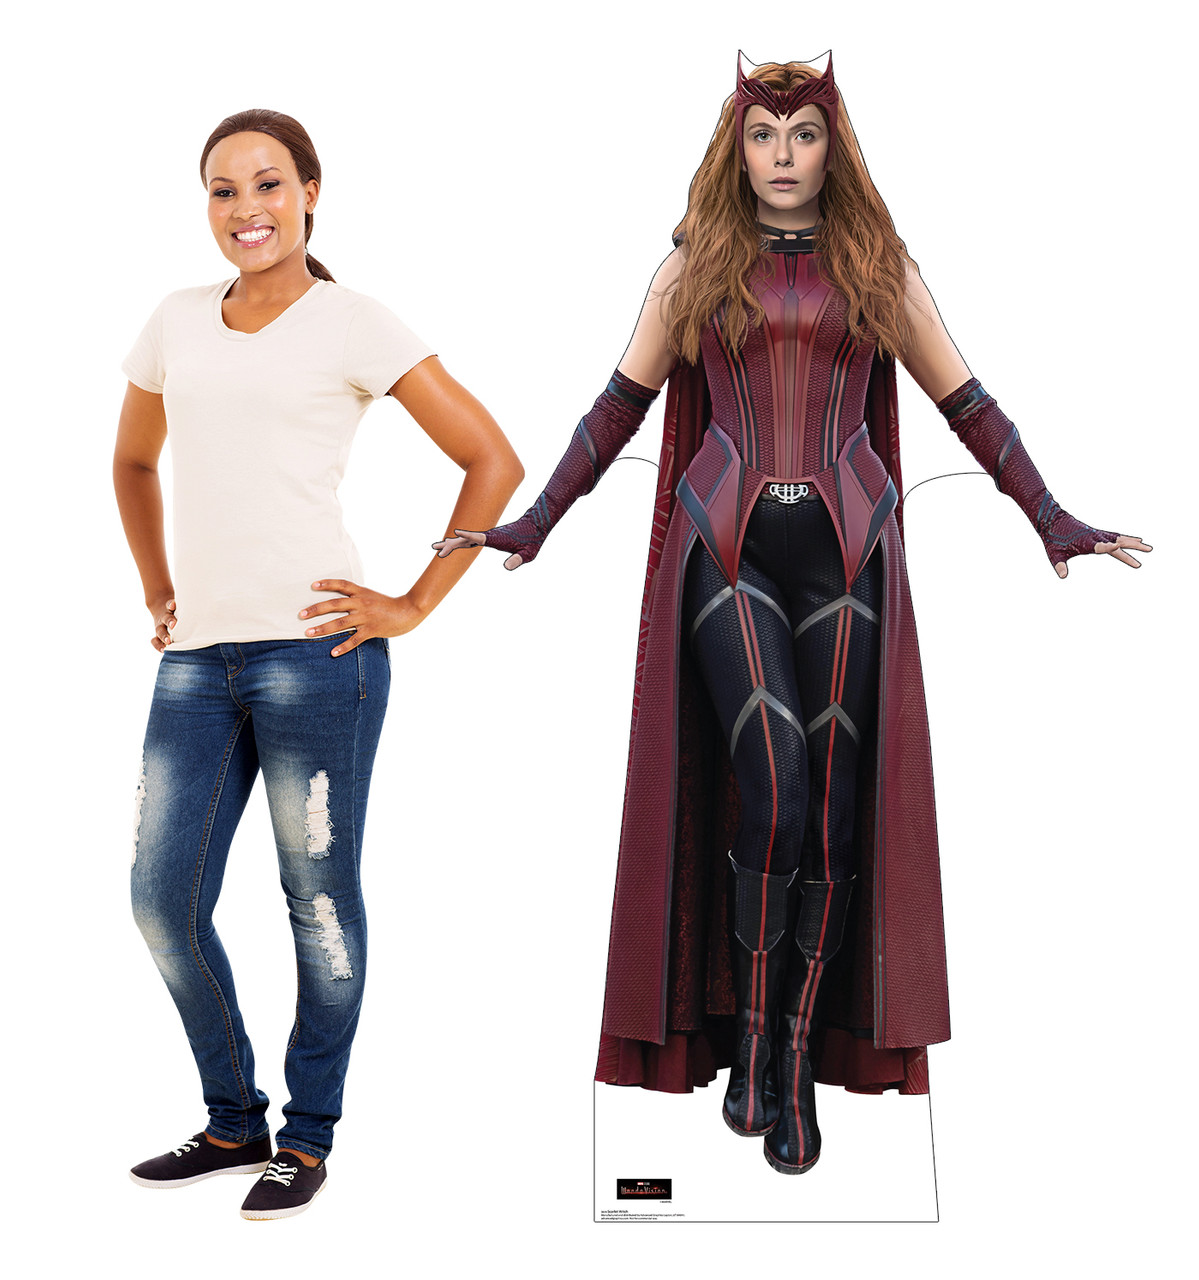 Life-size cardboard standee of the Scarlet Witch from the new Disney + series WandaVision with model.